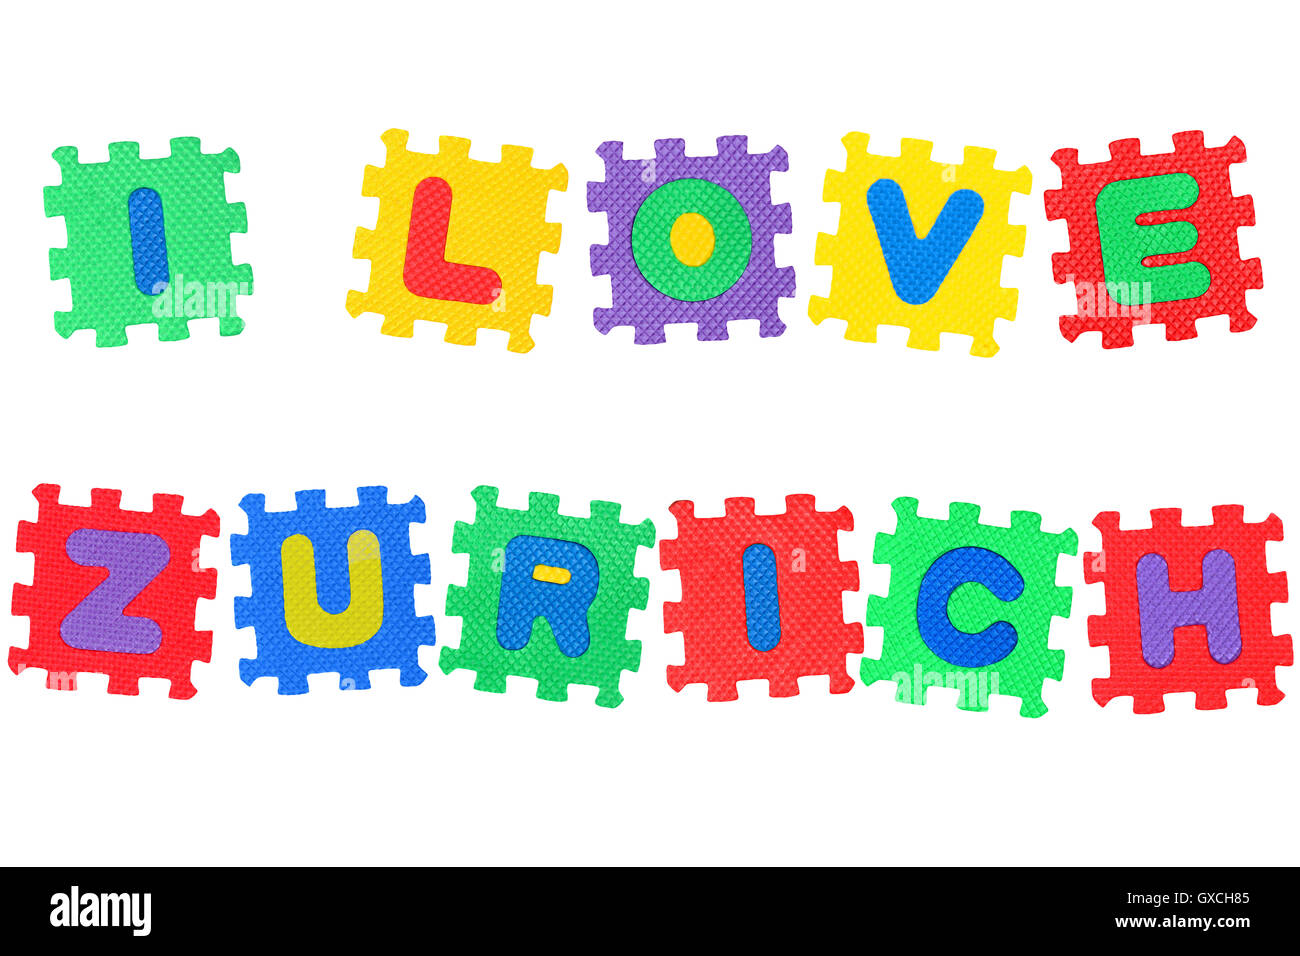 Message I Love Zurich, from letters puzzle, isolated on white background. - Stock Image